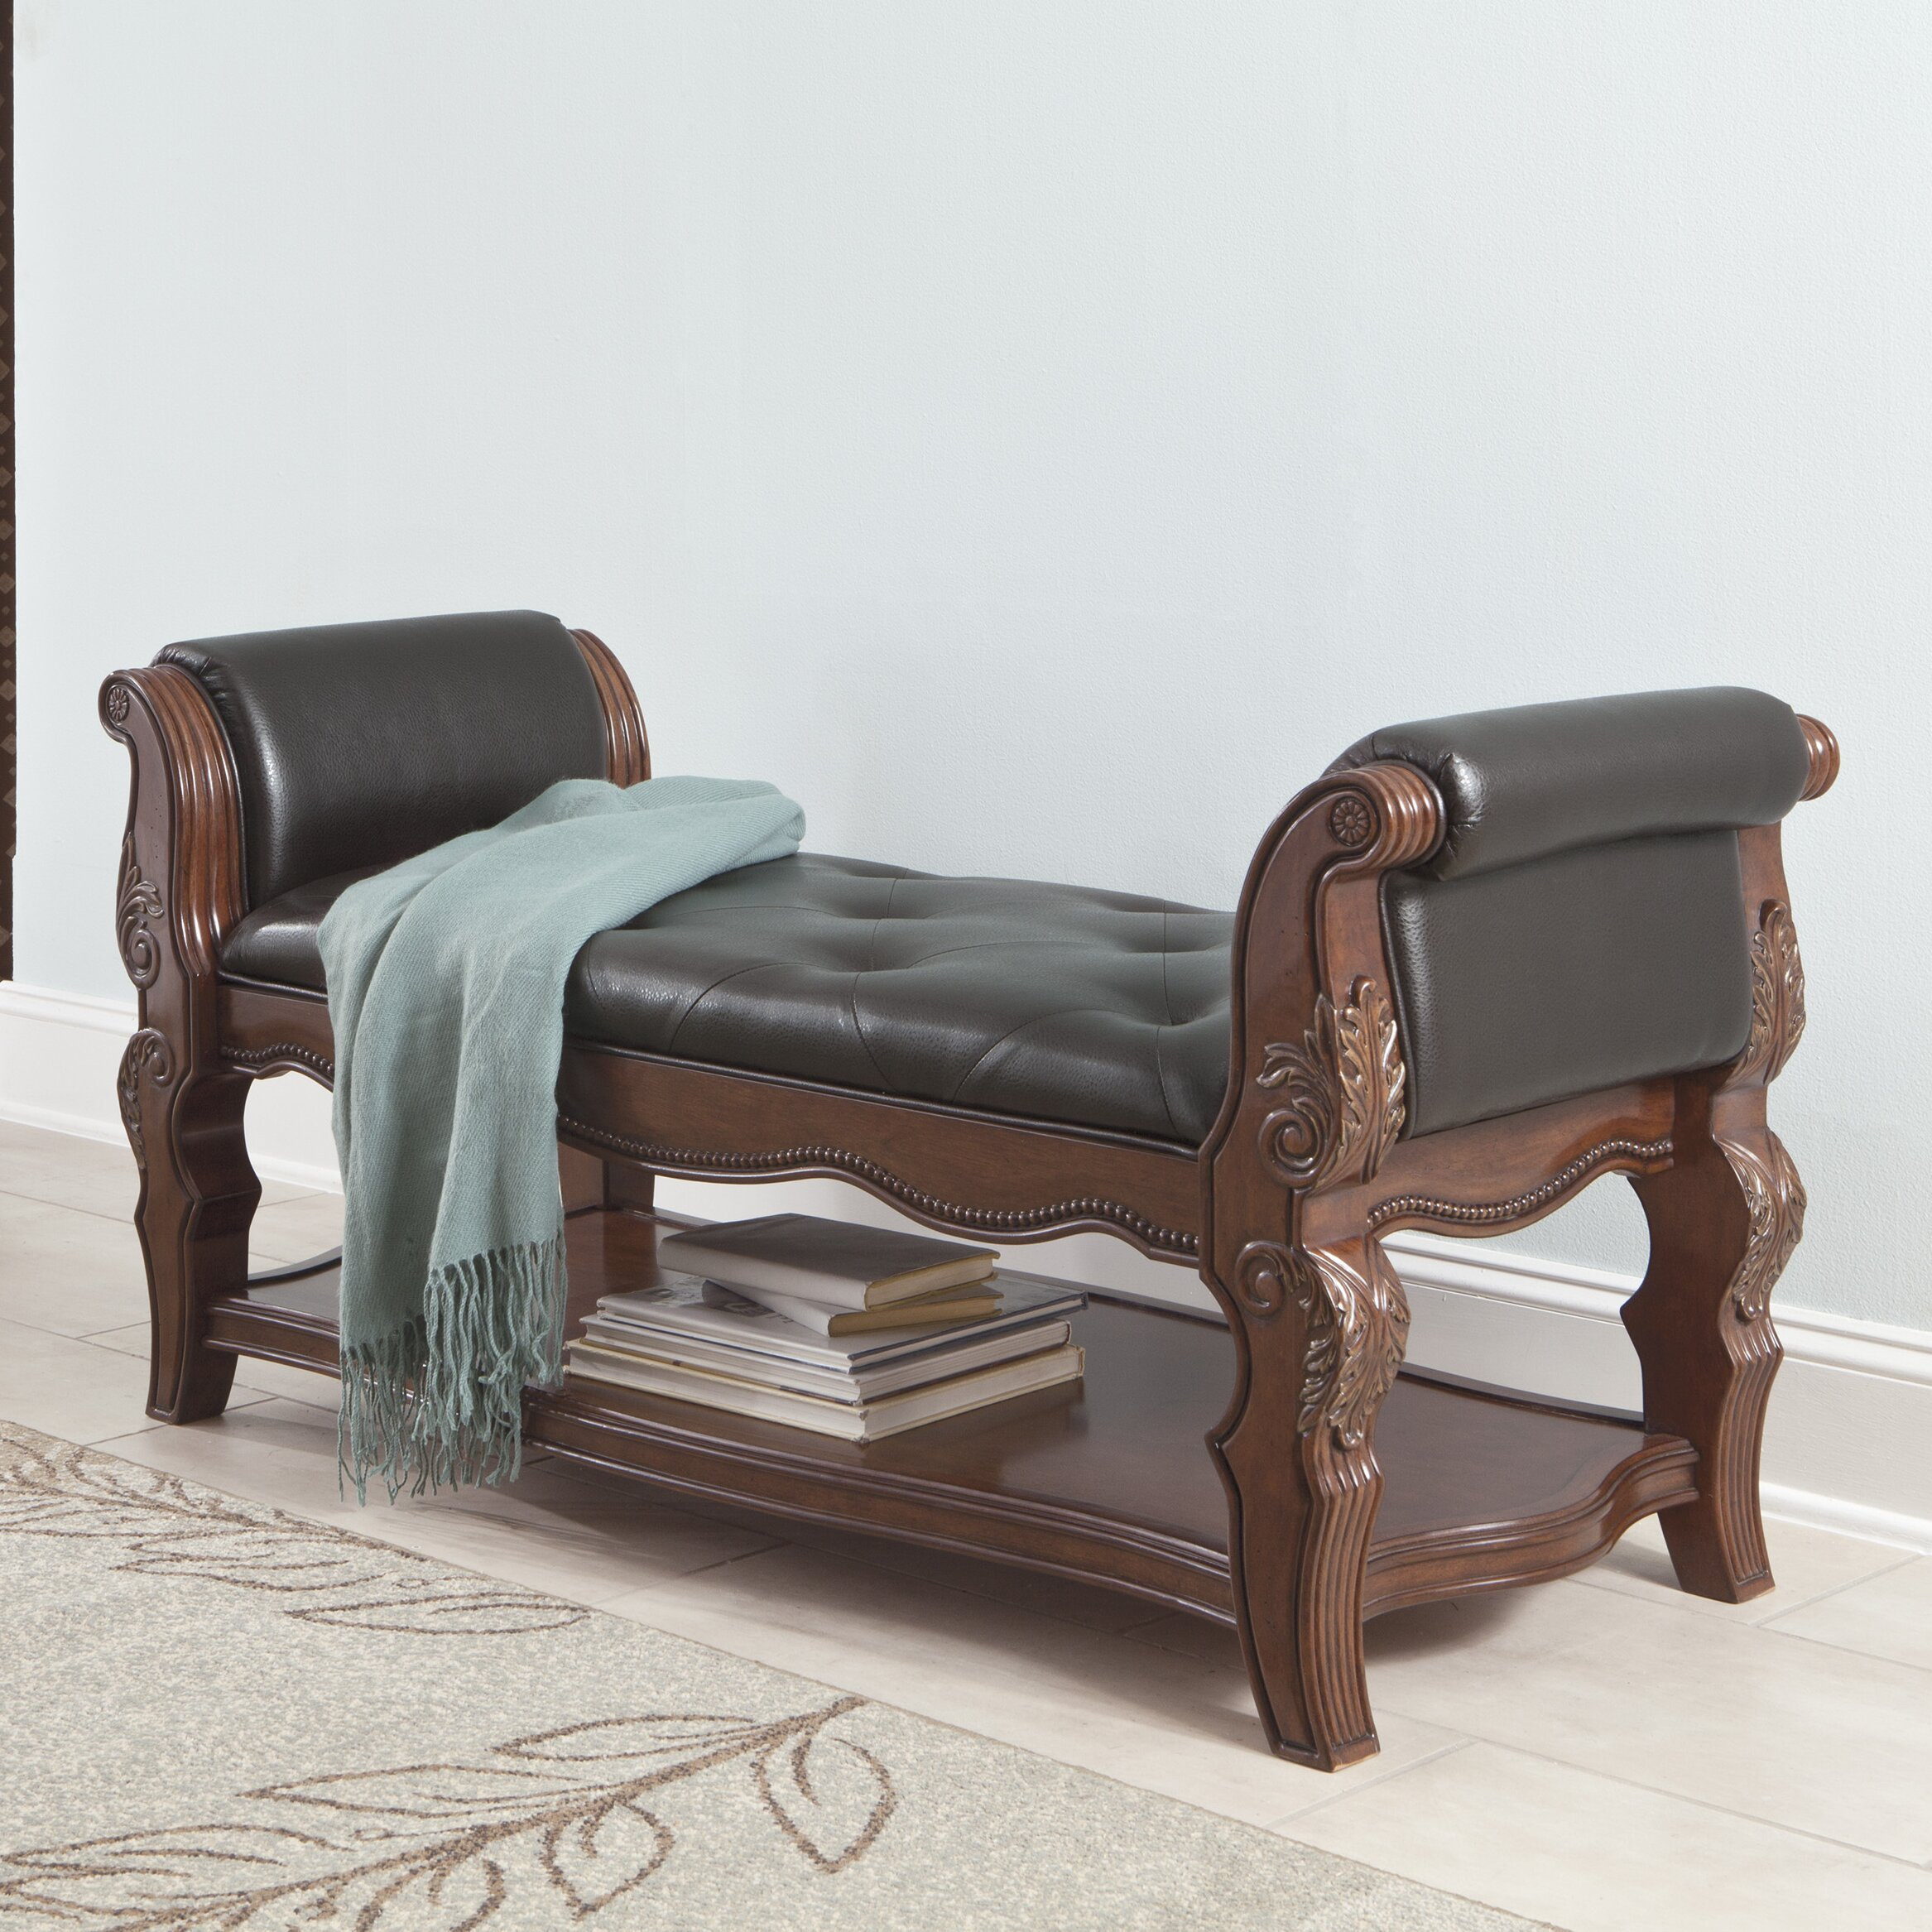 Signature design by ashley ledelle upholstered bedroom - Ashley furniture bedroom benches ...